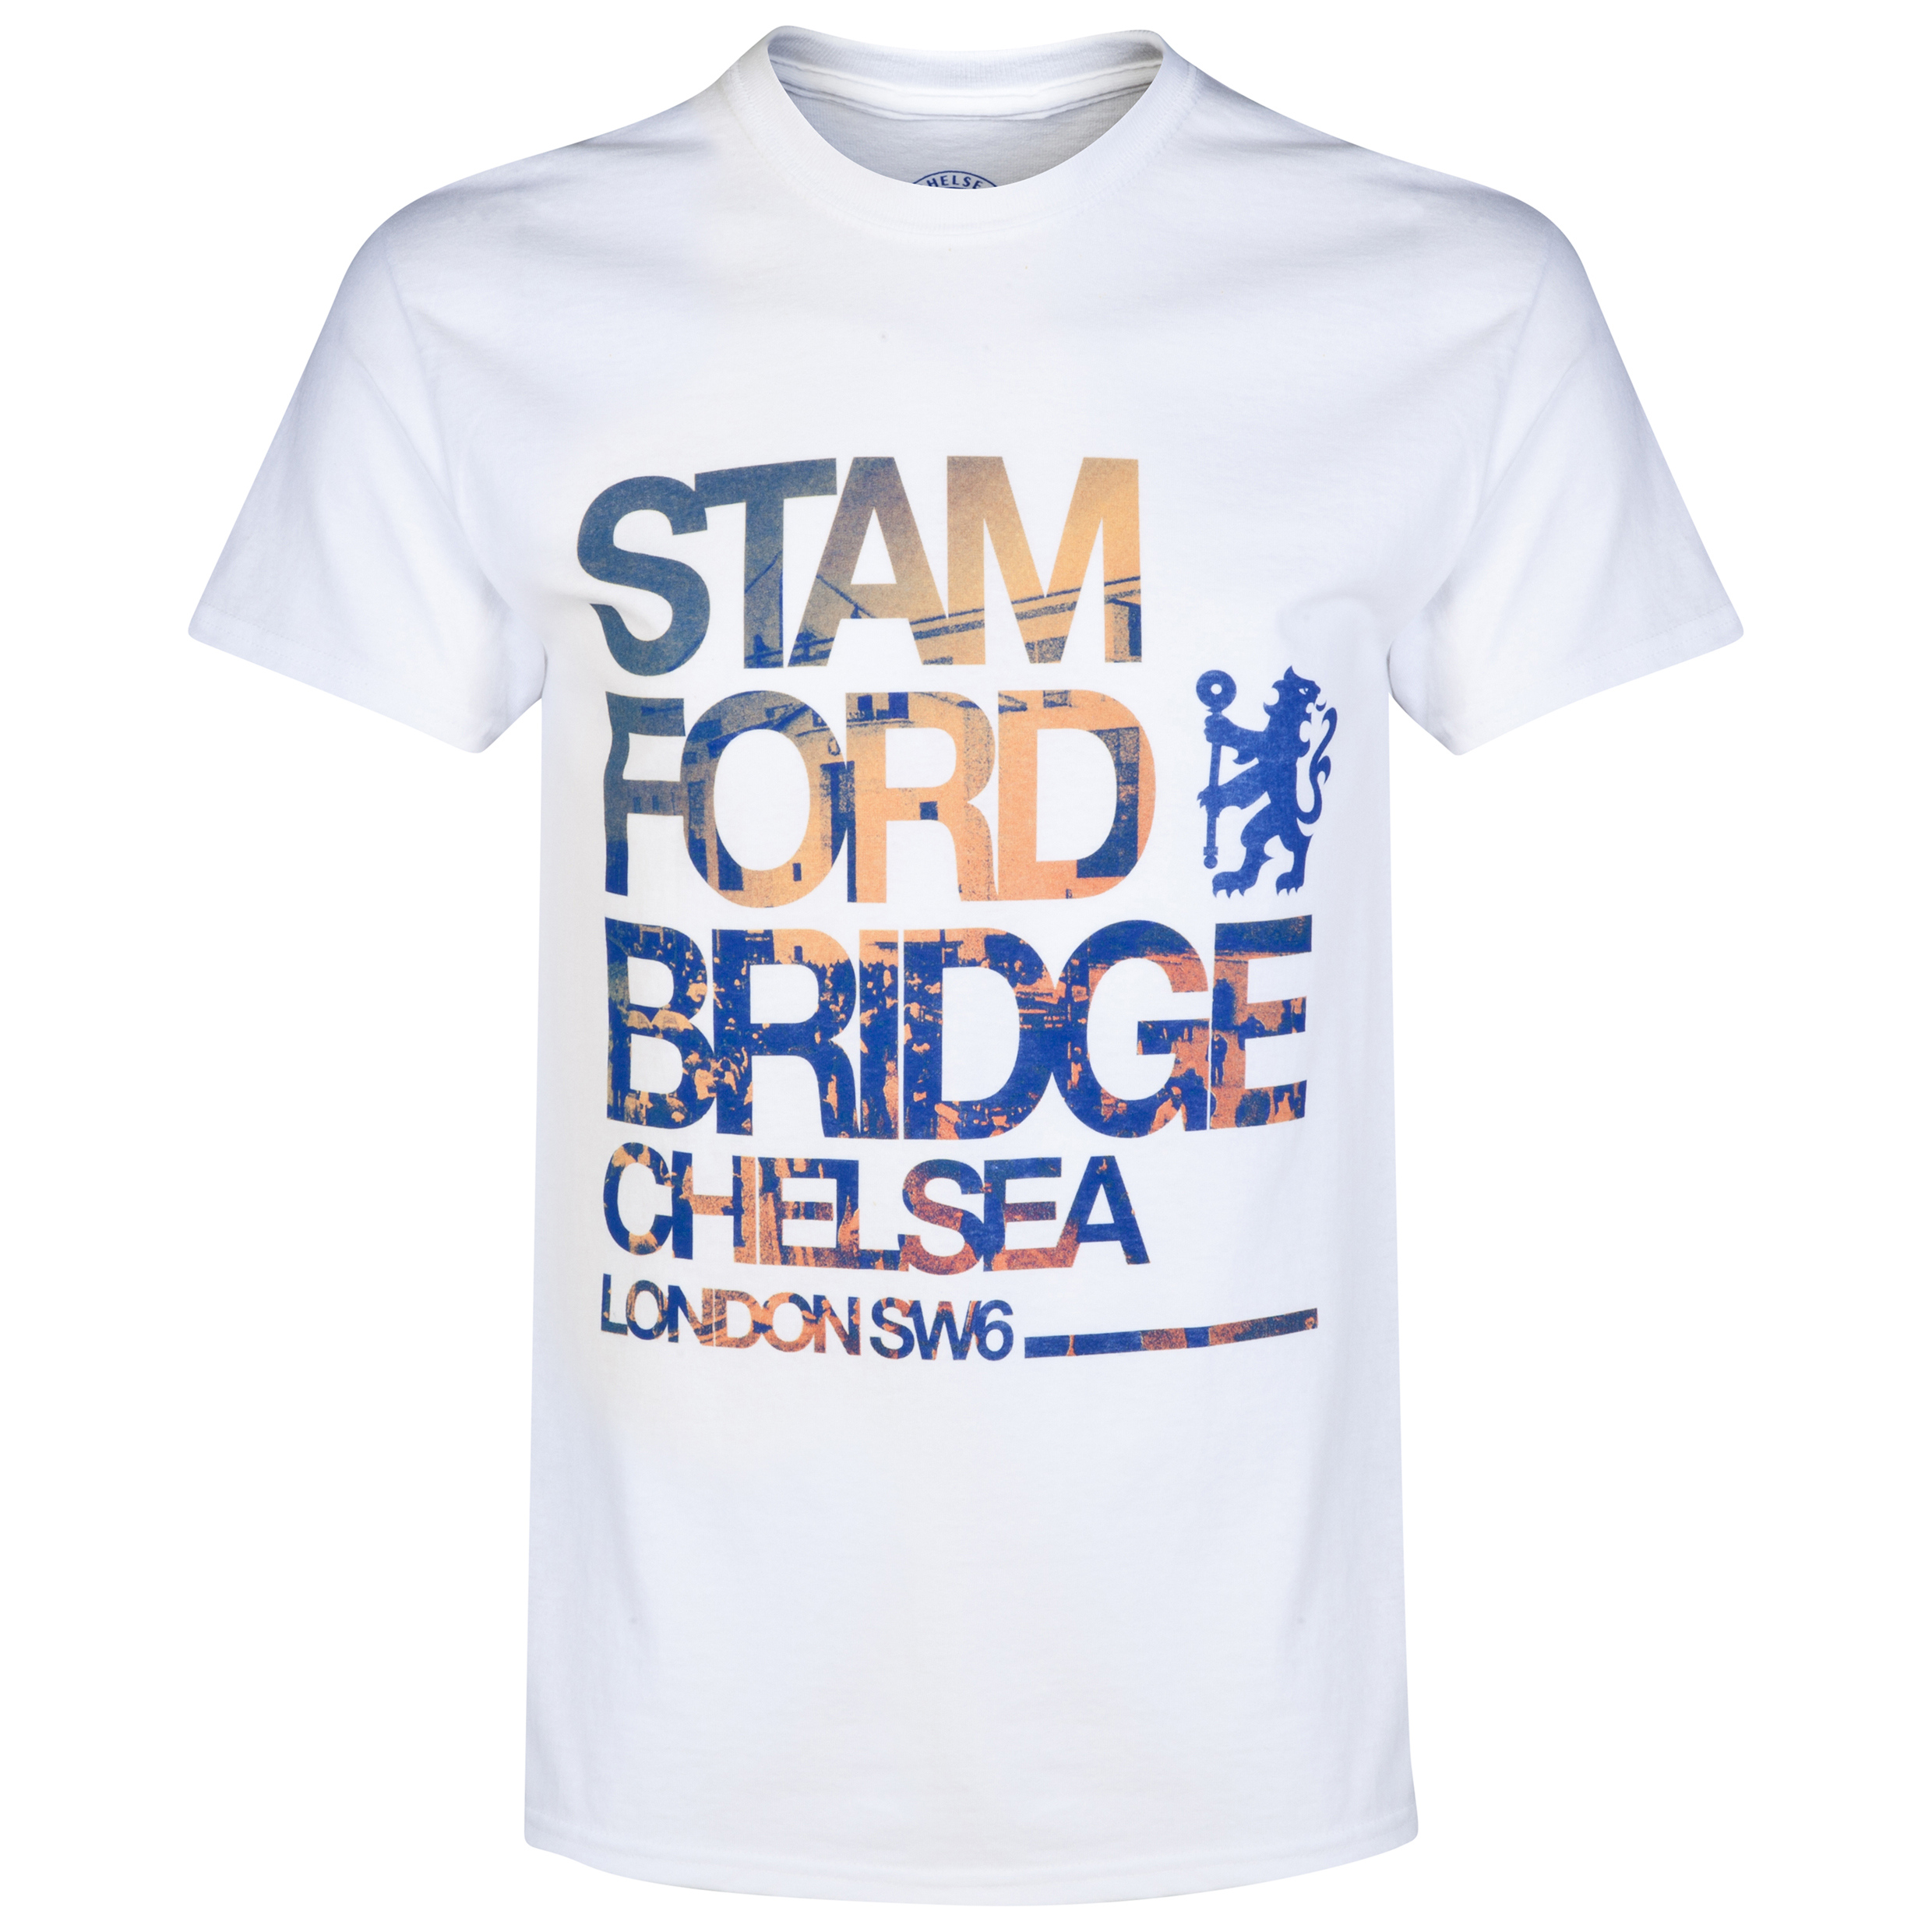 Chelsea Stamford Bridge T-Shirt - White - Mens